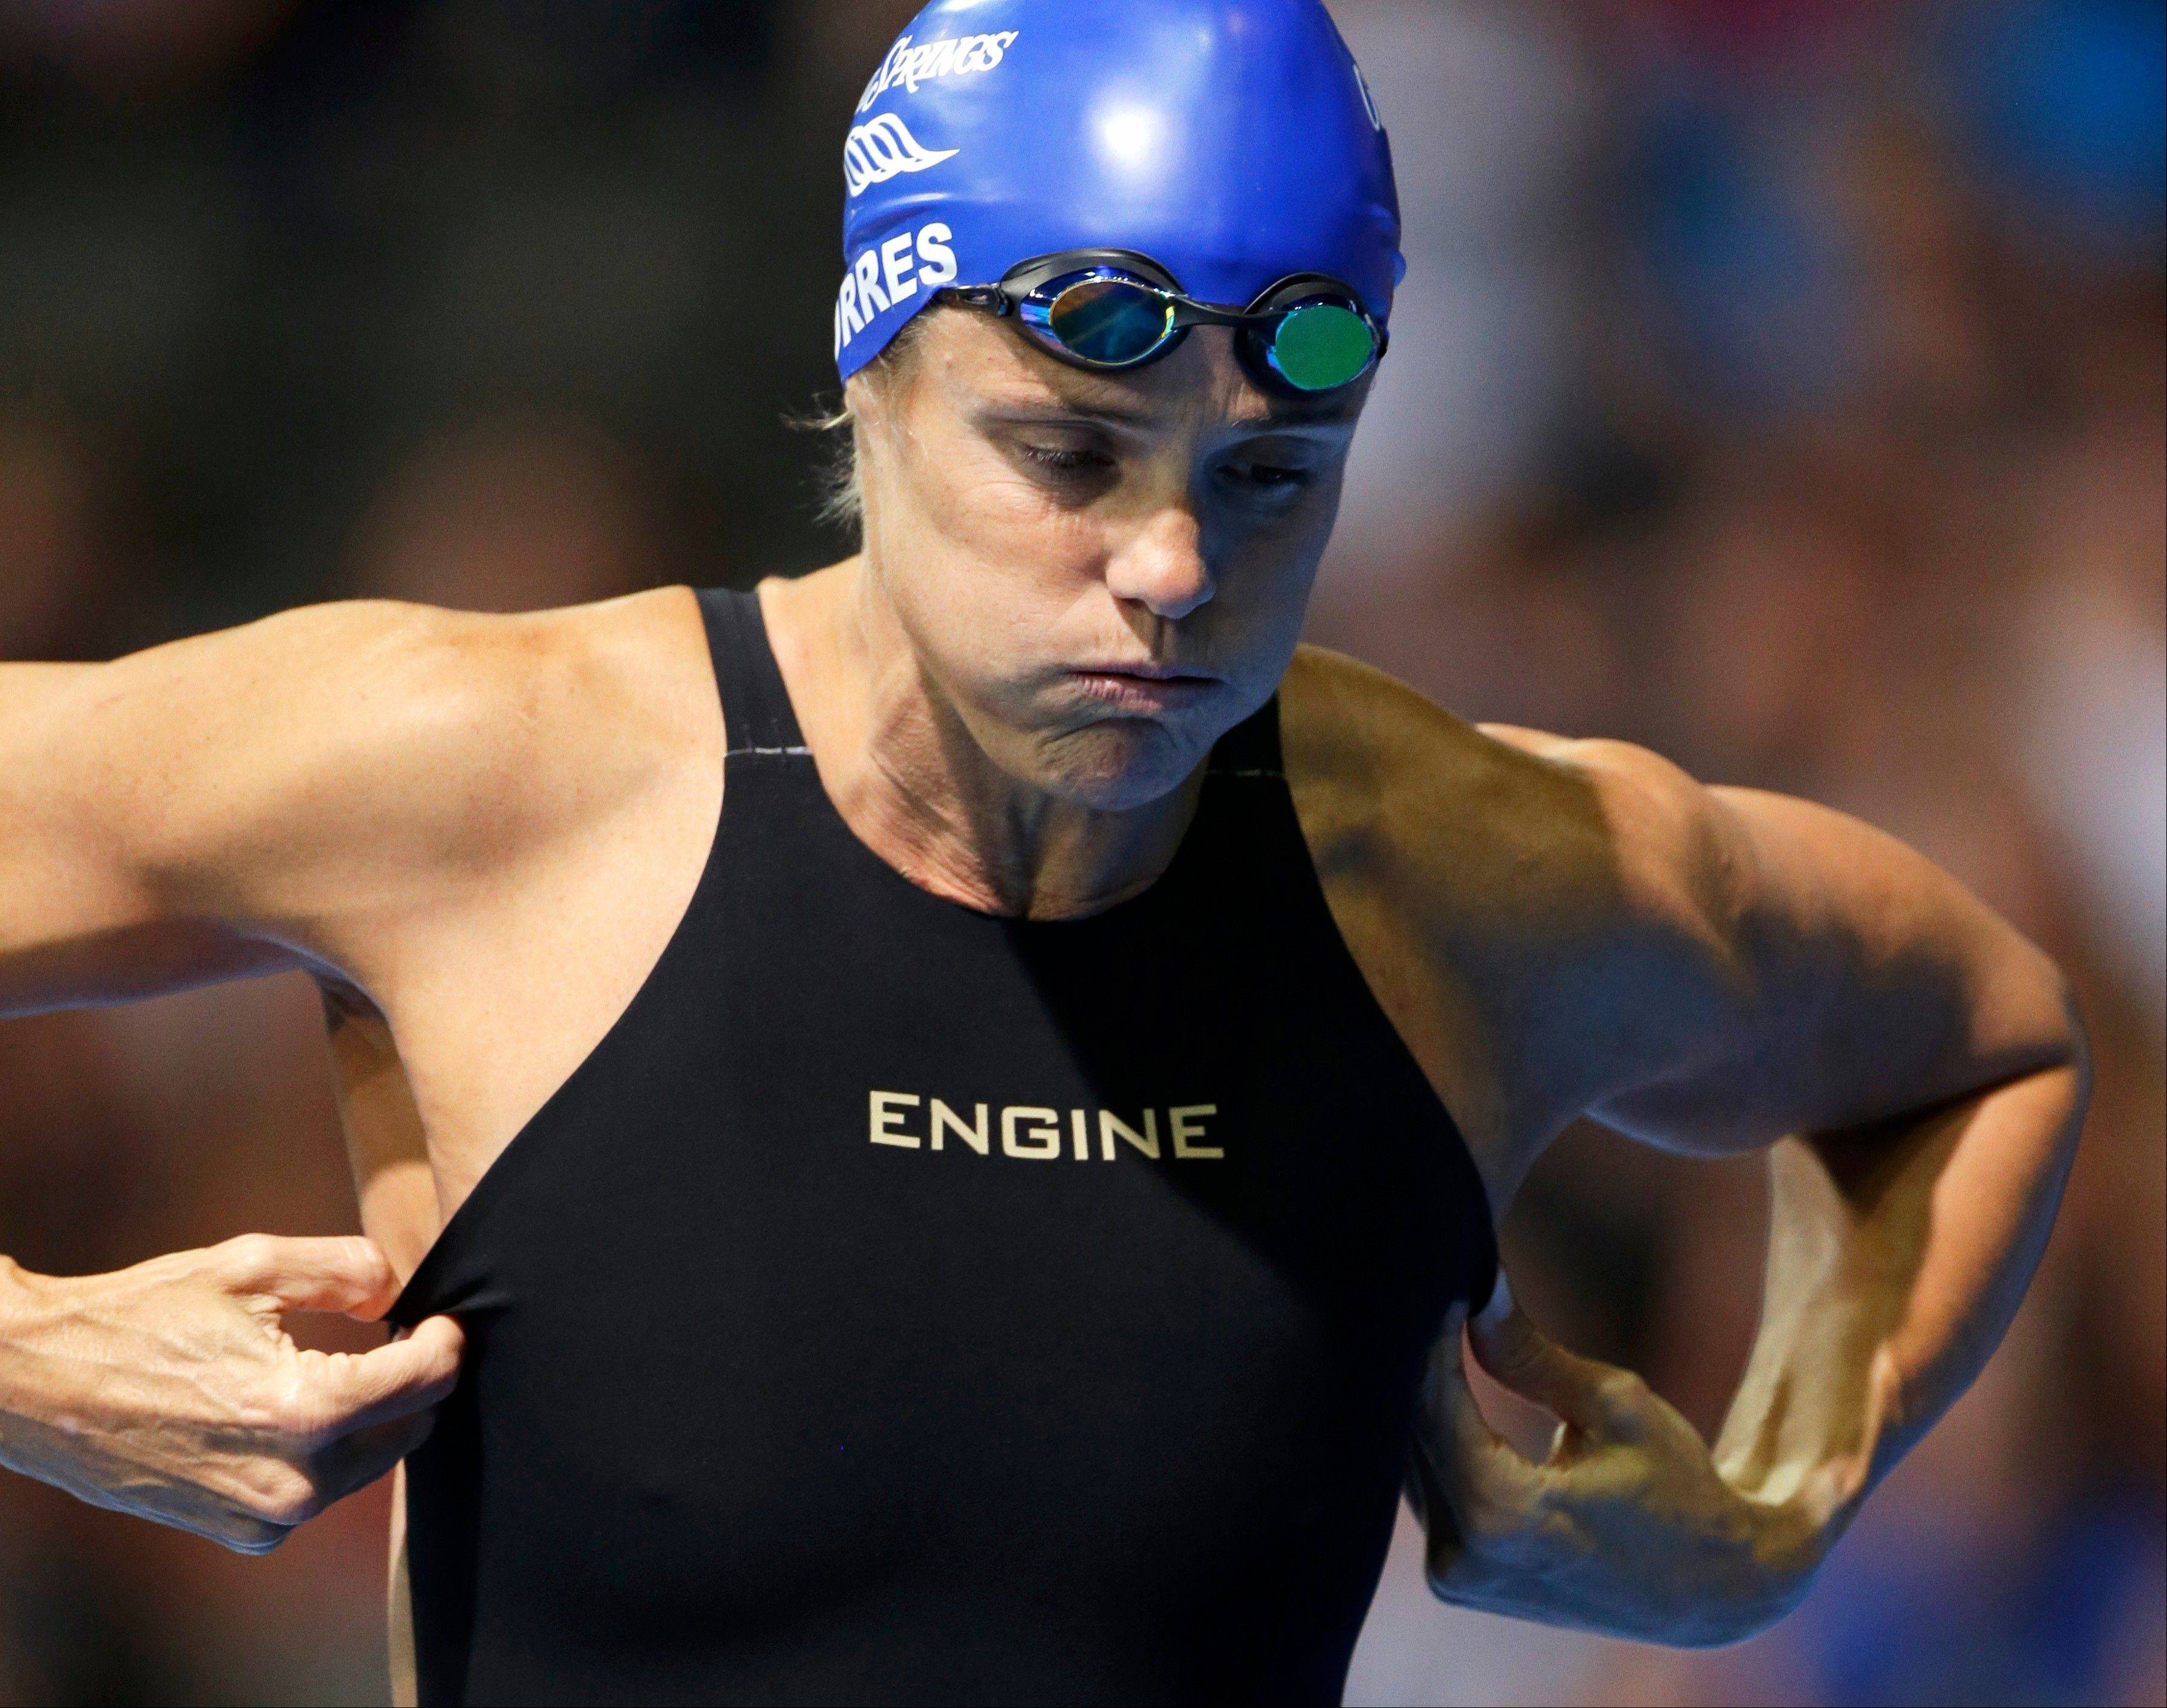 Dara Torres, who was trying to make it to her sixth Olympics, just missed making the U.S. swim team when she came in fourth in a women's 50-meter freestyle semifinal at the U.S. Olympic swimming trials on Monday in Omaha, Neb.